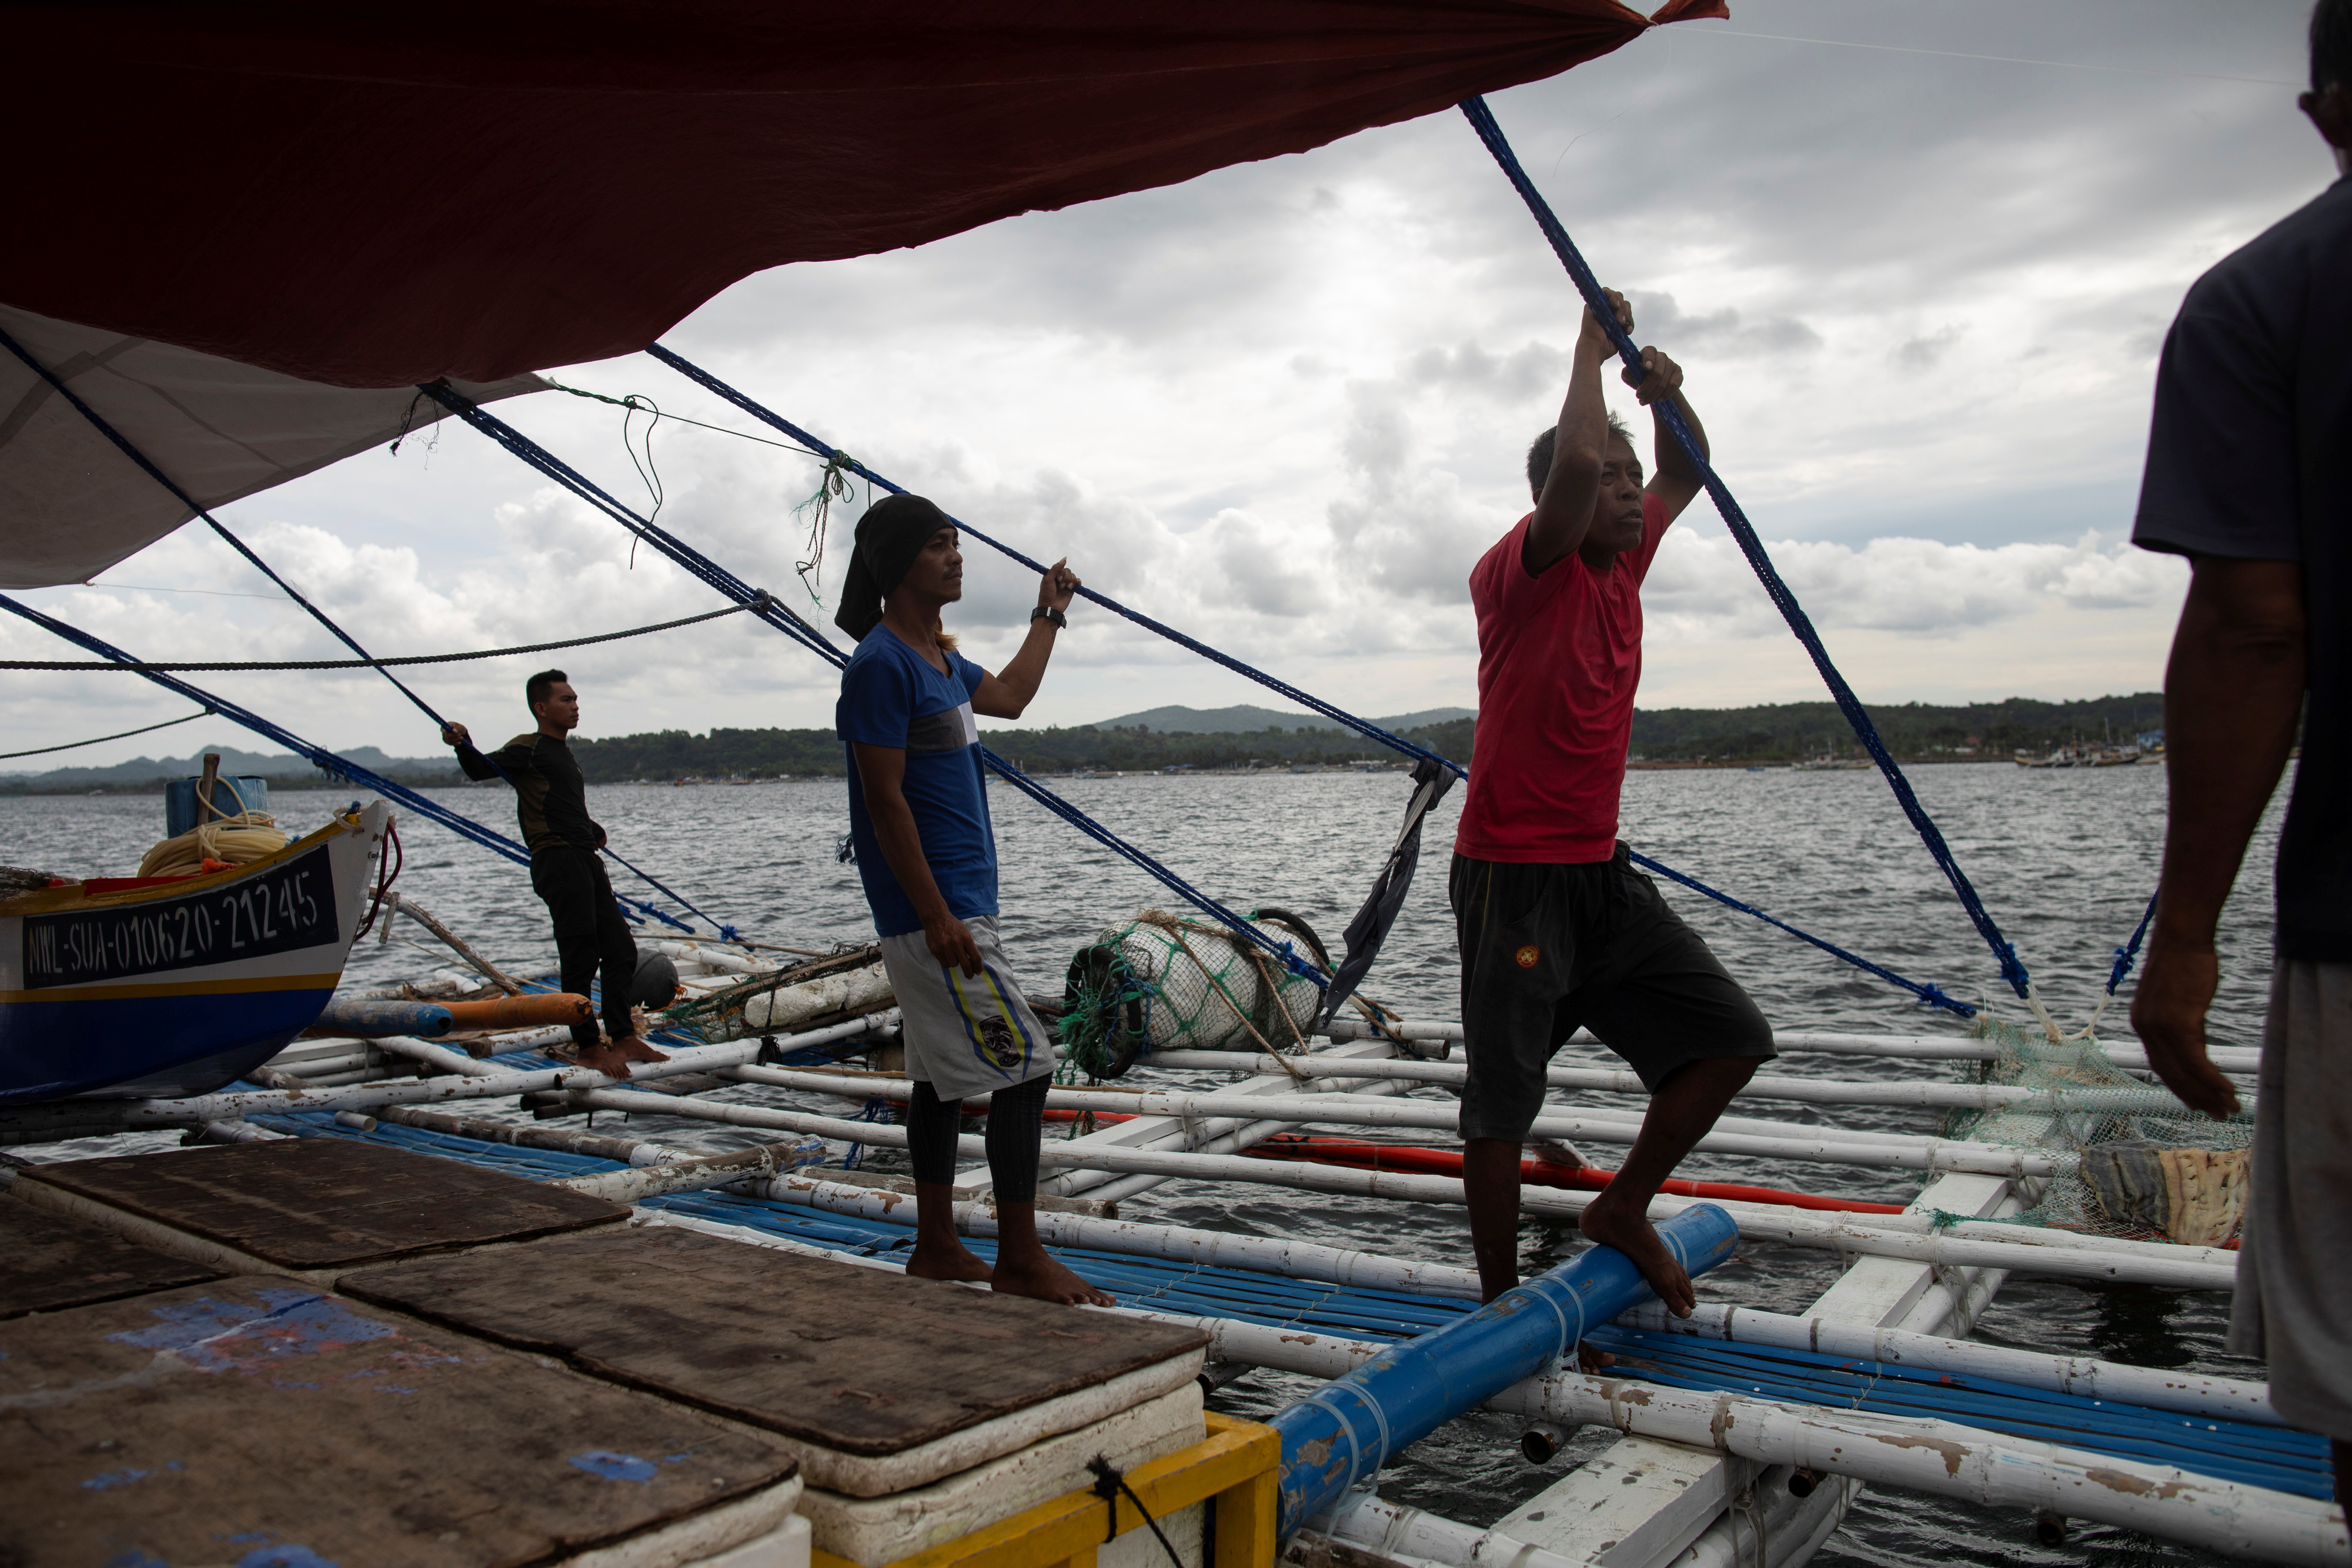 Filipino fishermen rest after arriving from a week-long trip to the disputed Scarborough Shoal, in Infanta, Pangasinan province, Philippines, July 6, 2021. Picture taken July 6, 2021. REUTERS/Eloisa Lopez